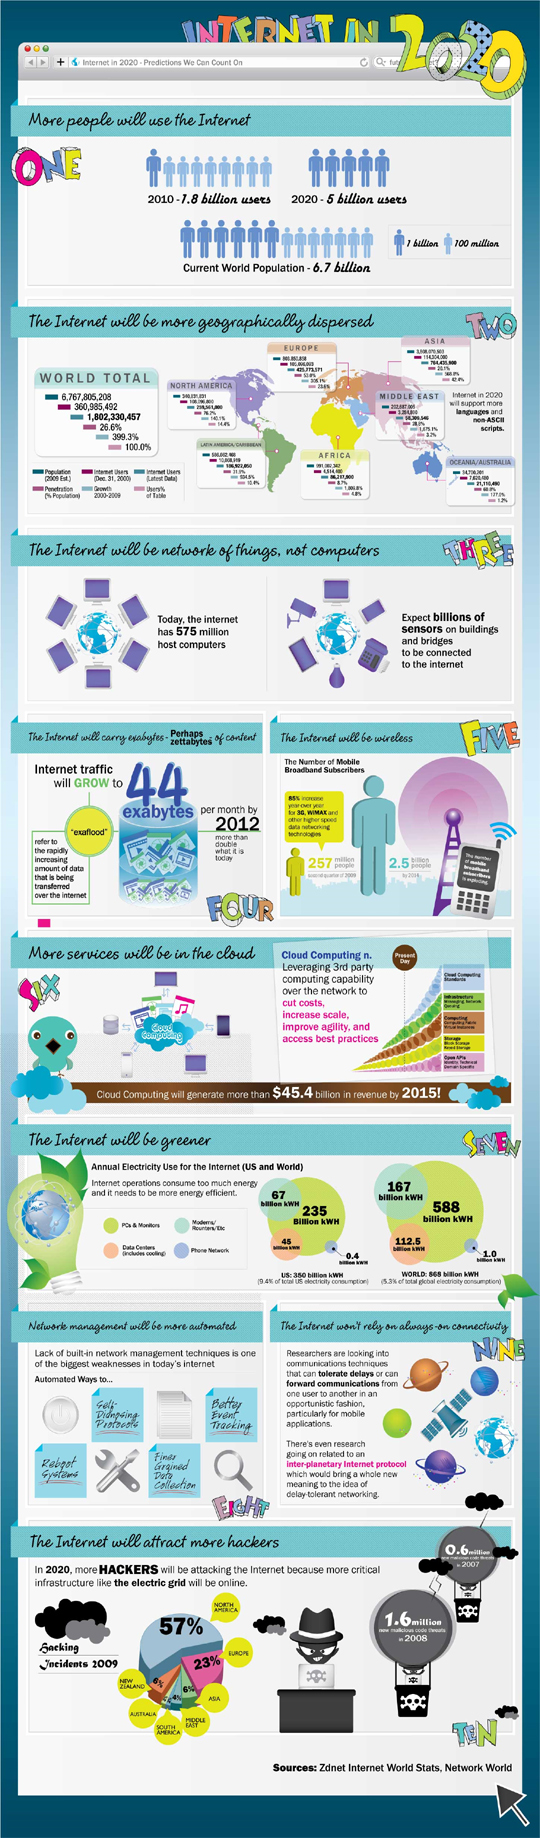 How Bigger The Internet Would Become By 2020 (Infographic) 79